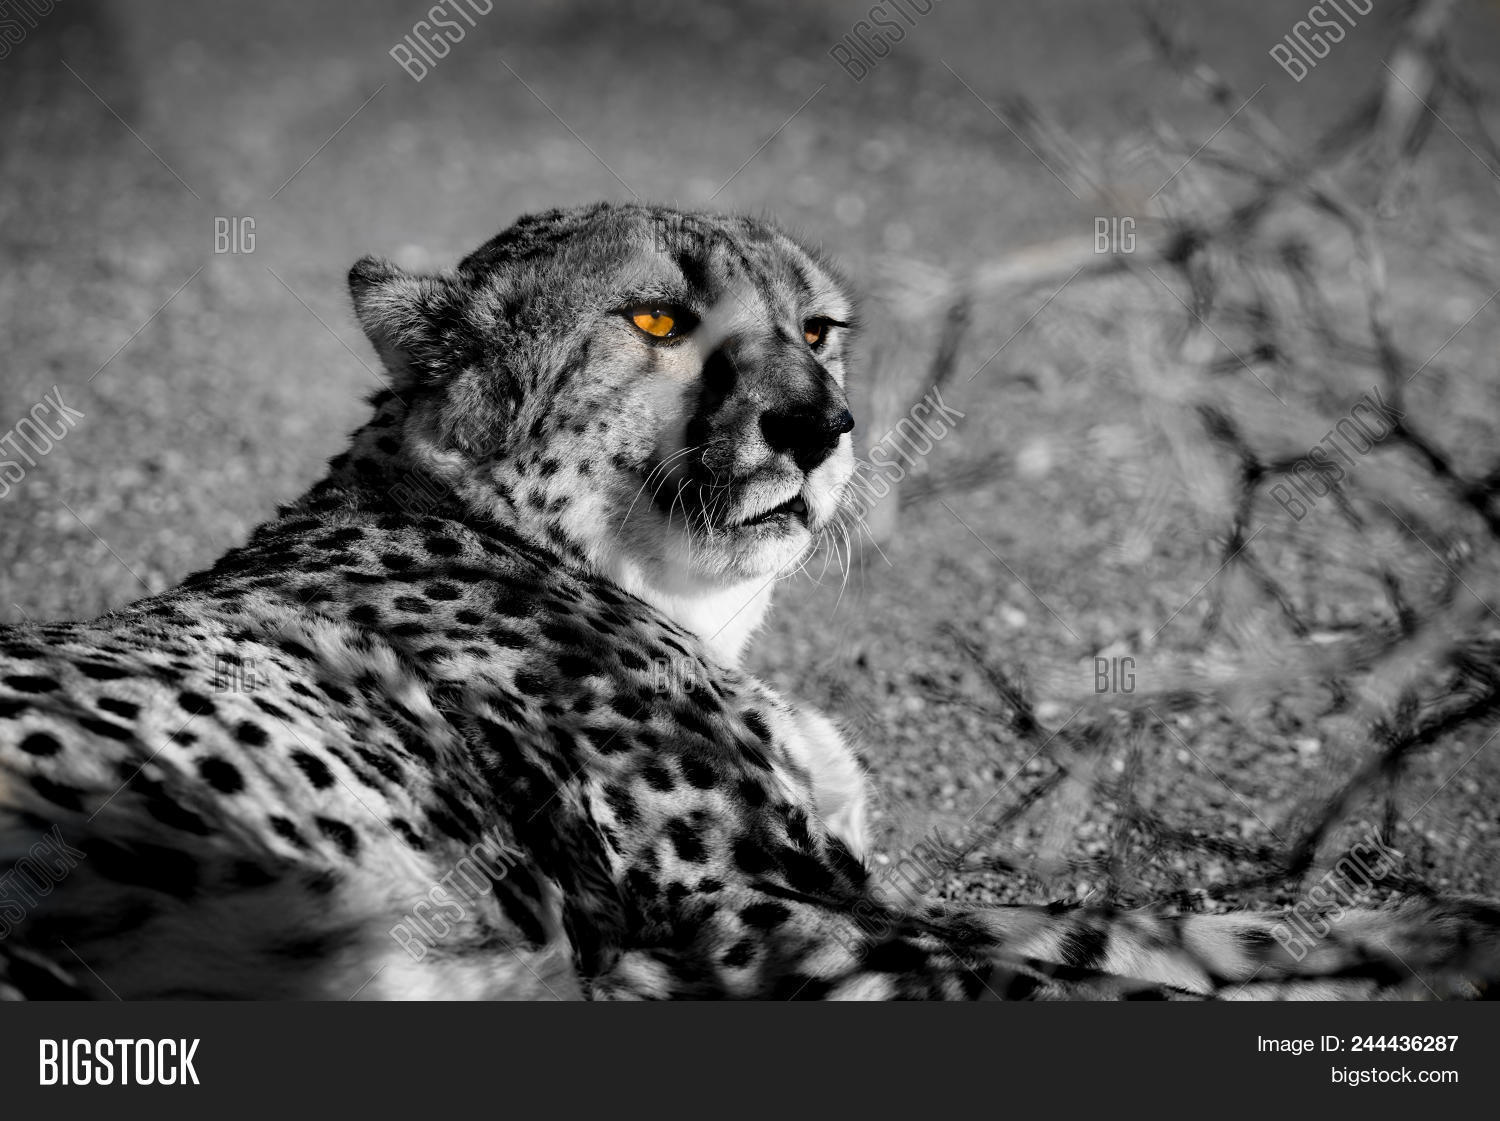 Relaxing cheetah in black and white with color splash bright golden eyes